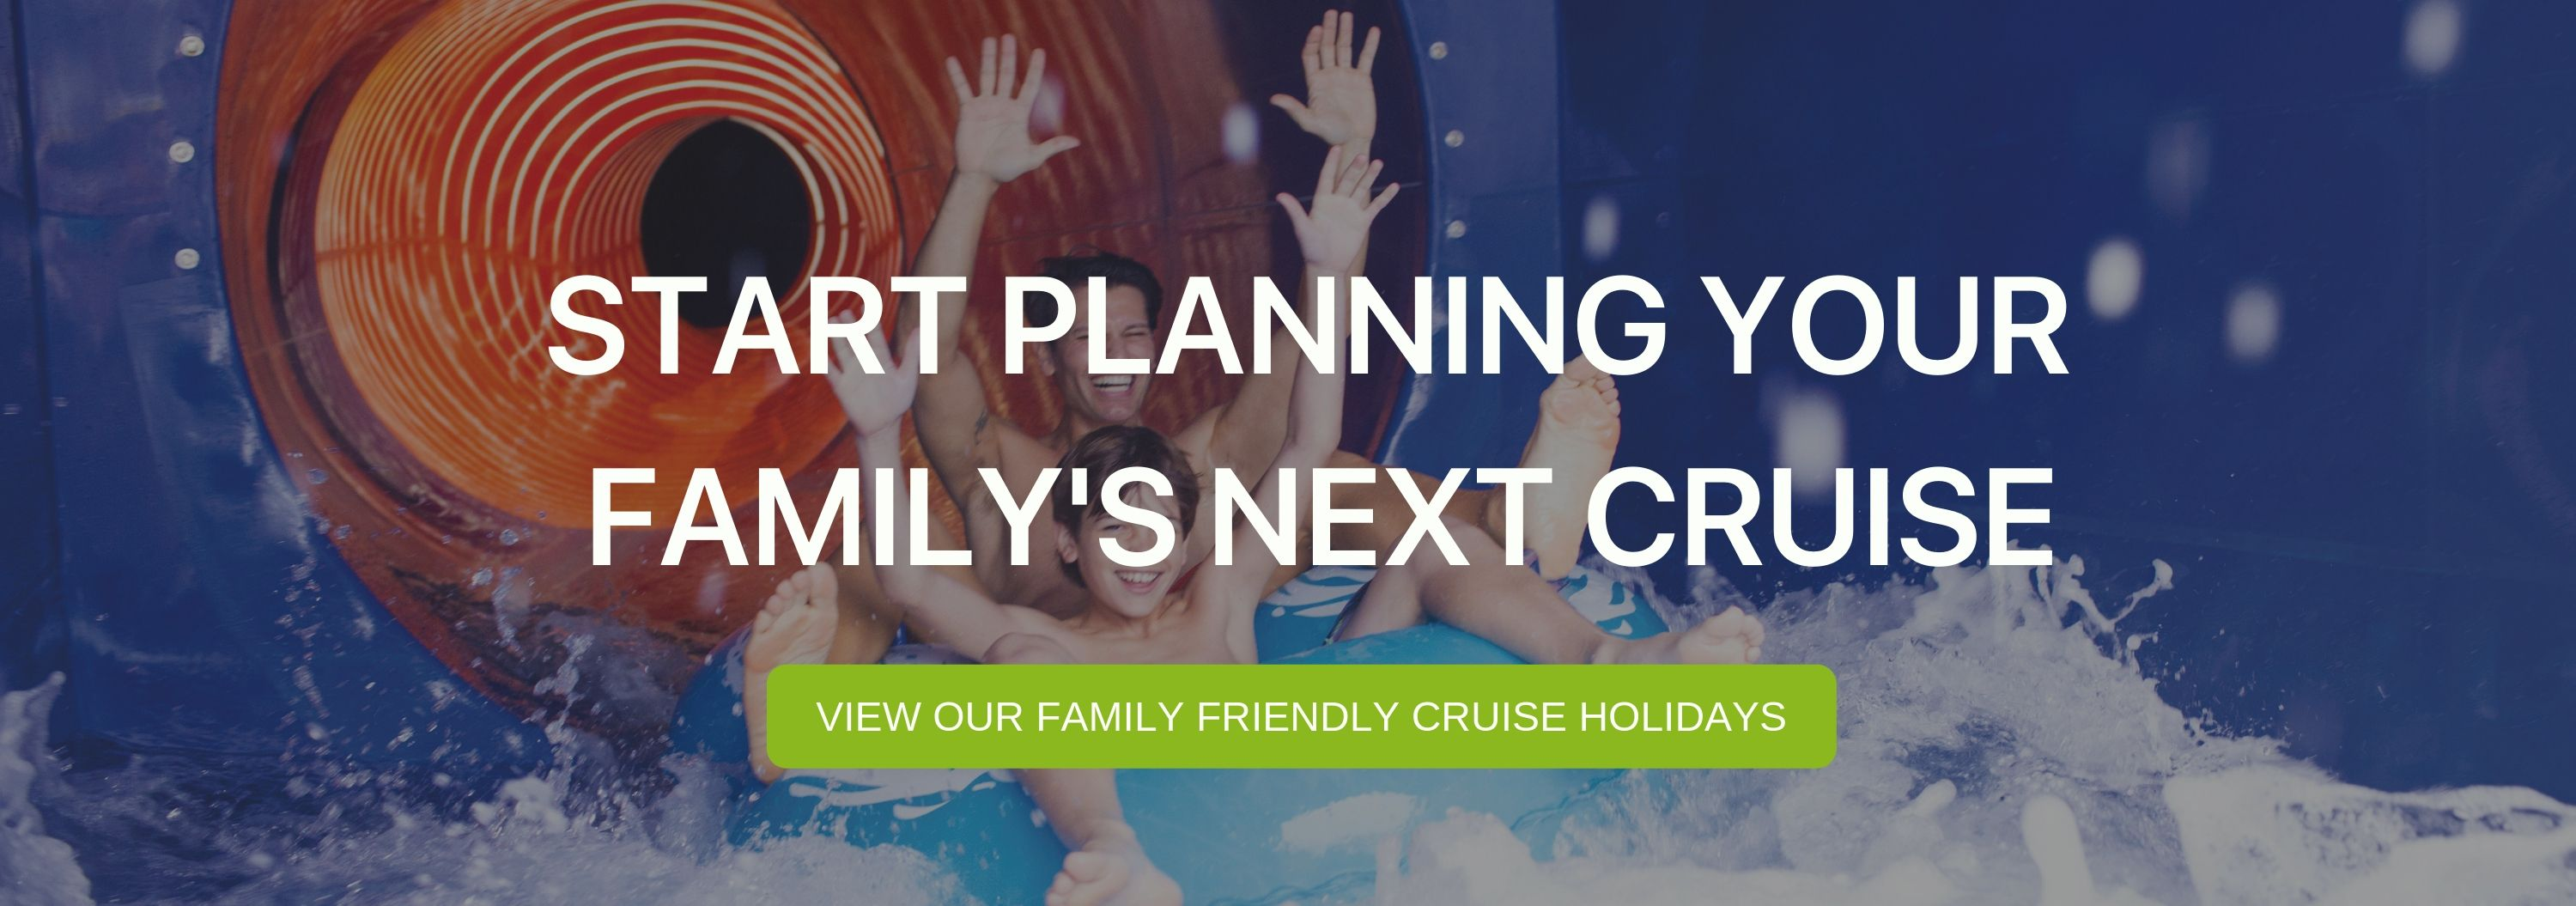 """A banner that says """"Start Planning Your Family's Next Cruise"""""""